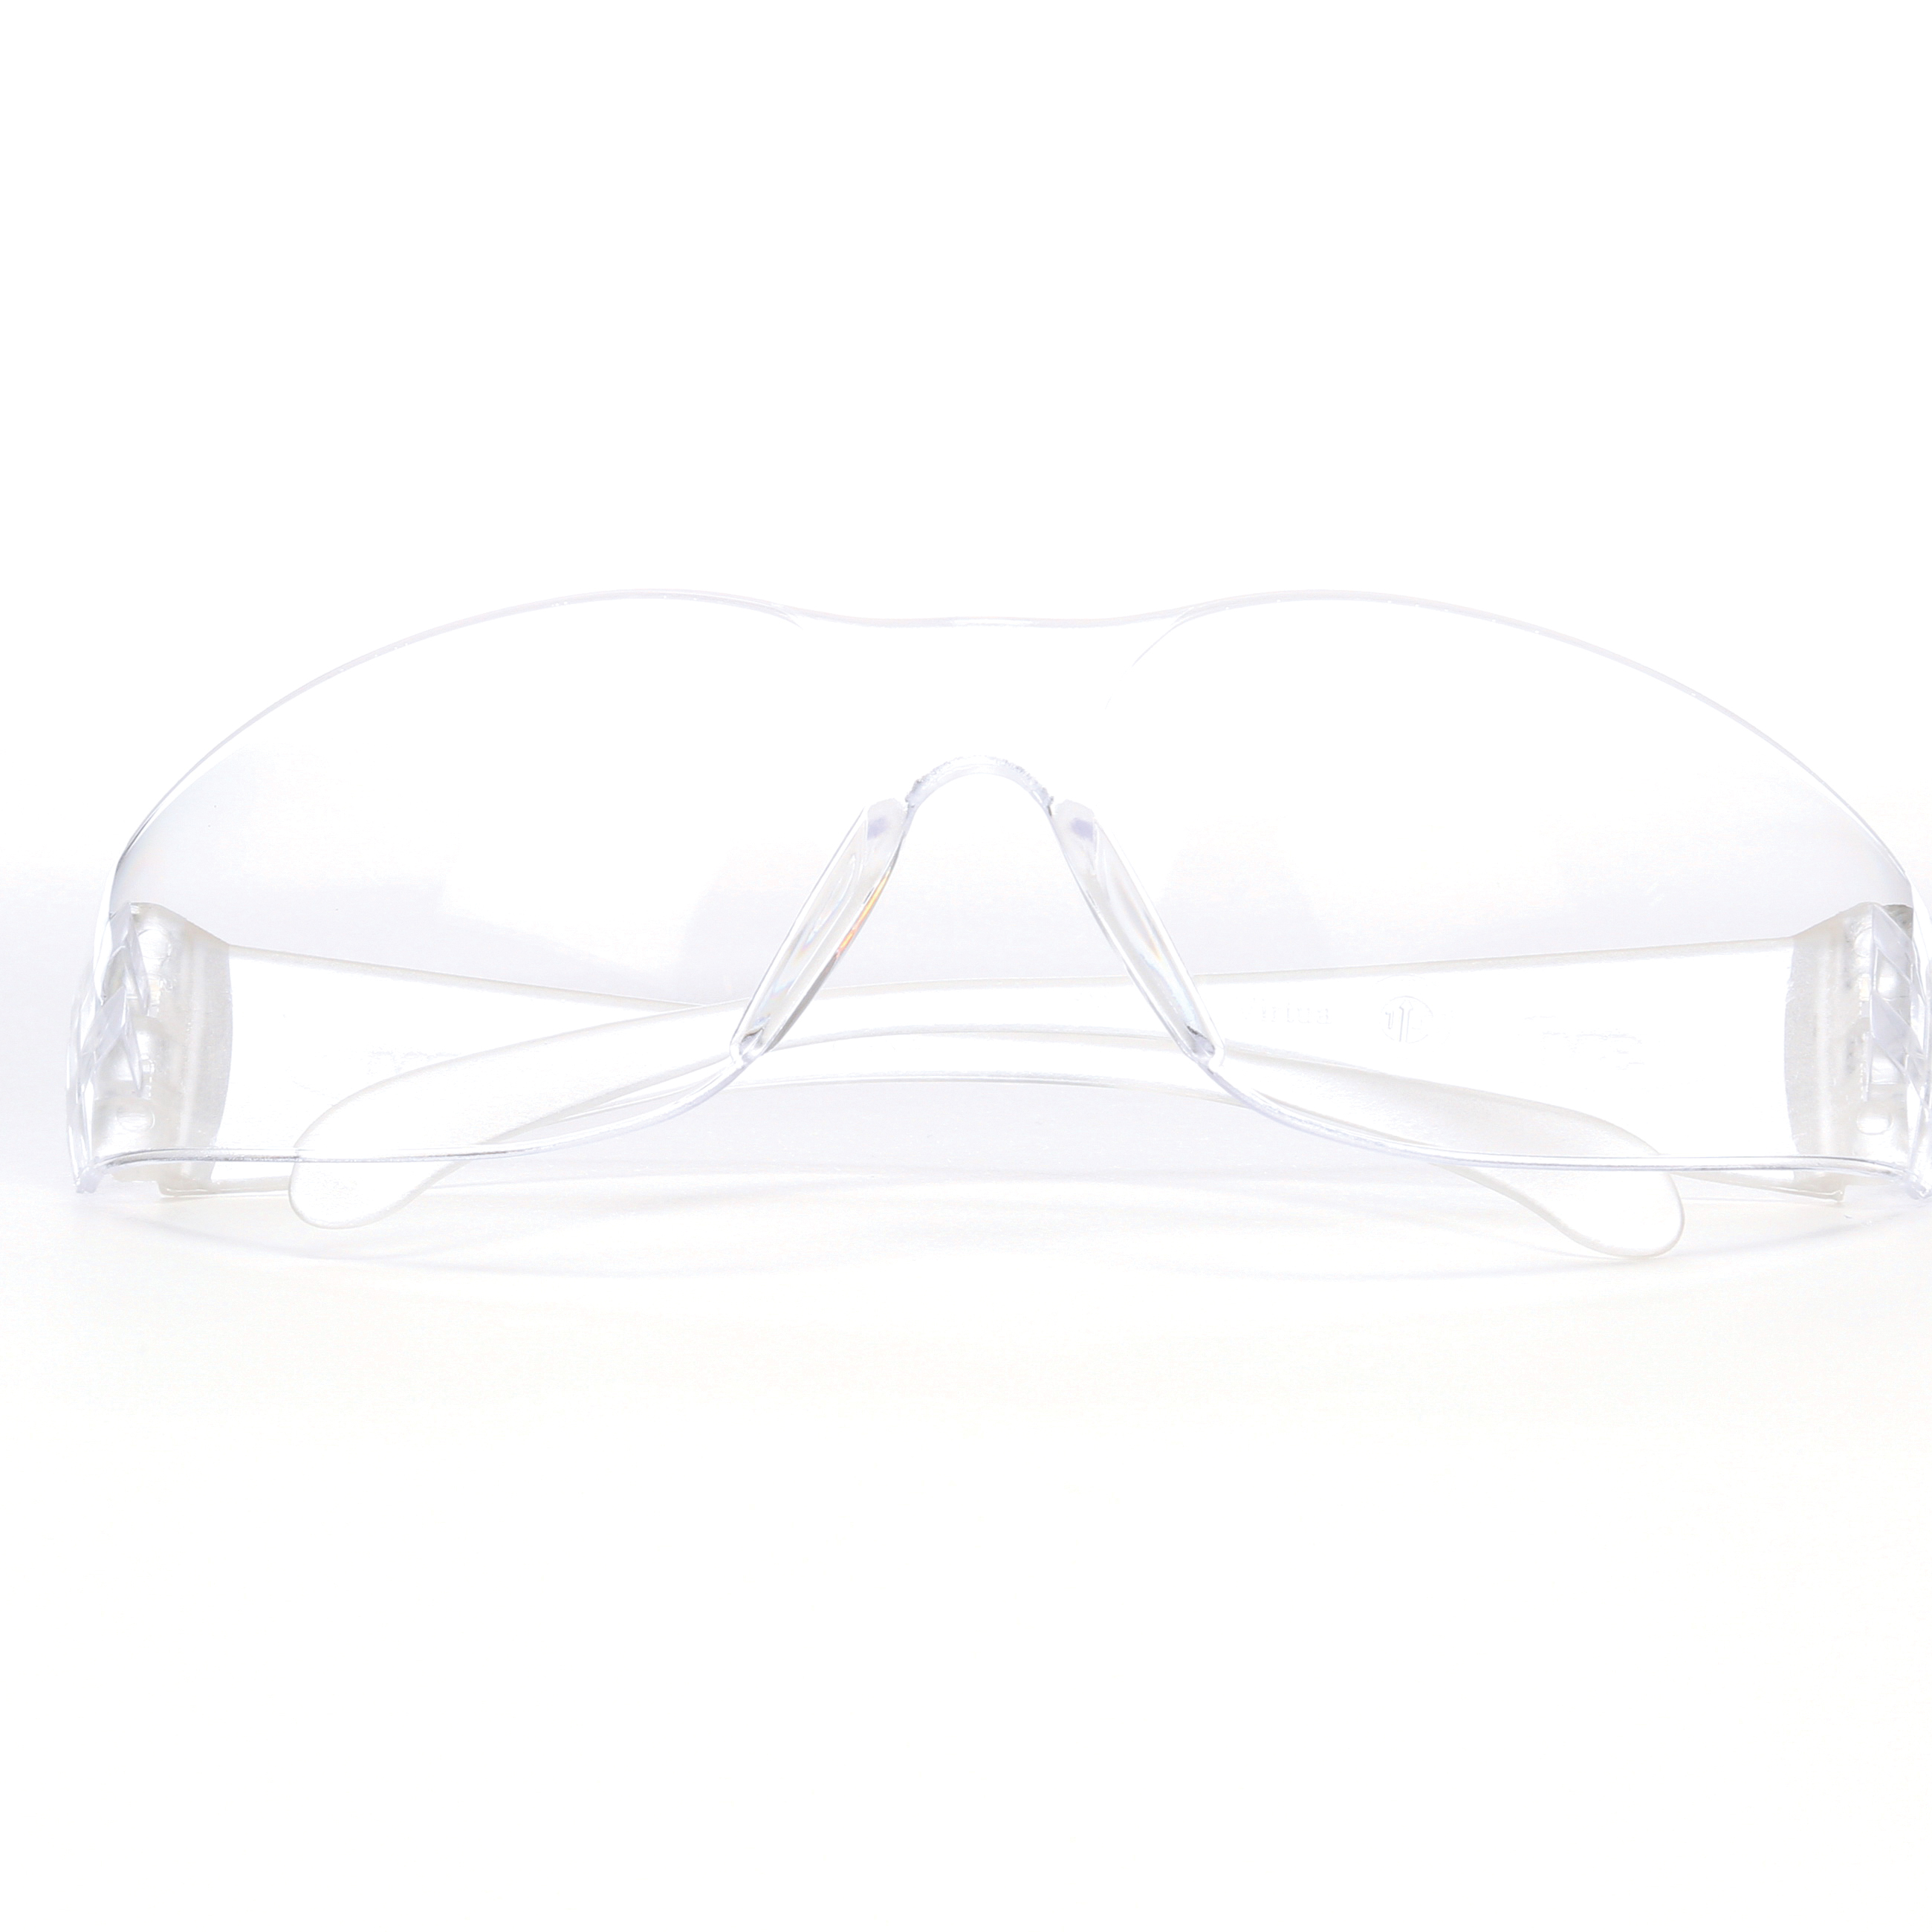 3M™ Virtua™ 078371-62099 11326-00000-20 Economy Lightweight Protective Eyewear, Anti-Scratch/Hard Coat Clear Lens, Frameless/Wraparound Clear Polycarbonate Frame, Polycarbonate Lens, Specifications Met: ANSI Z87.1-2015